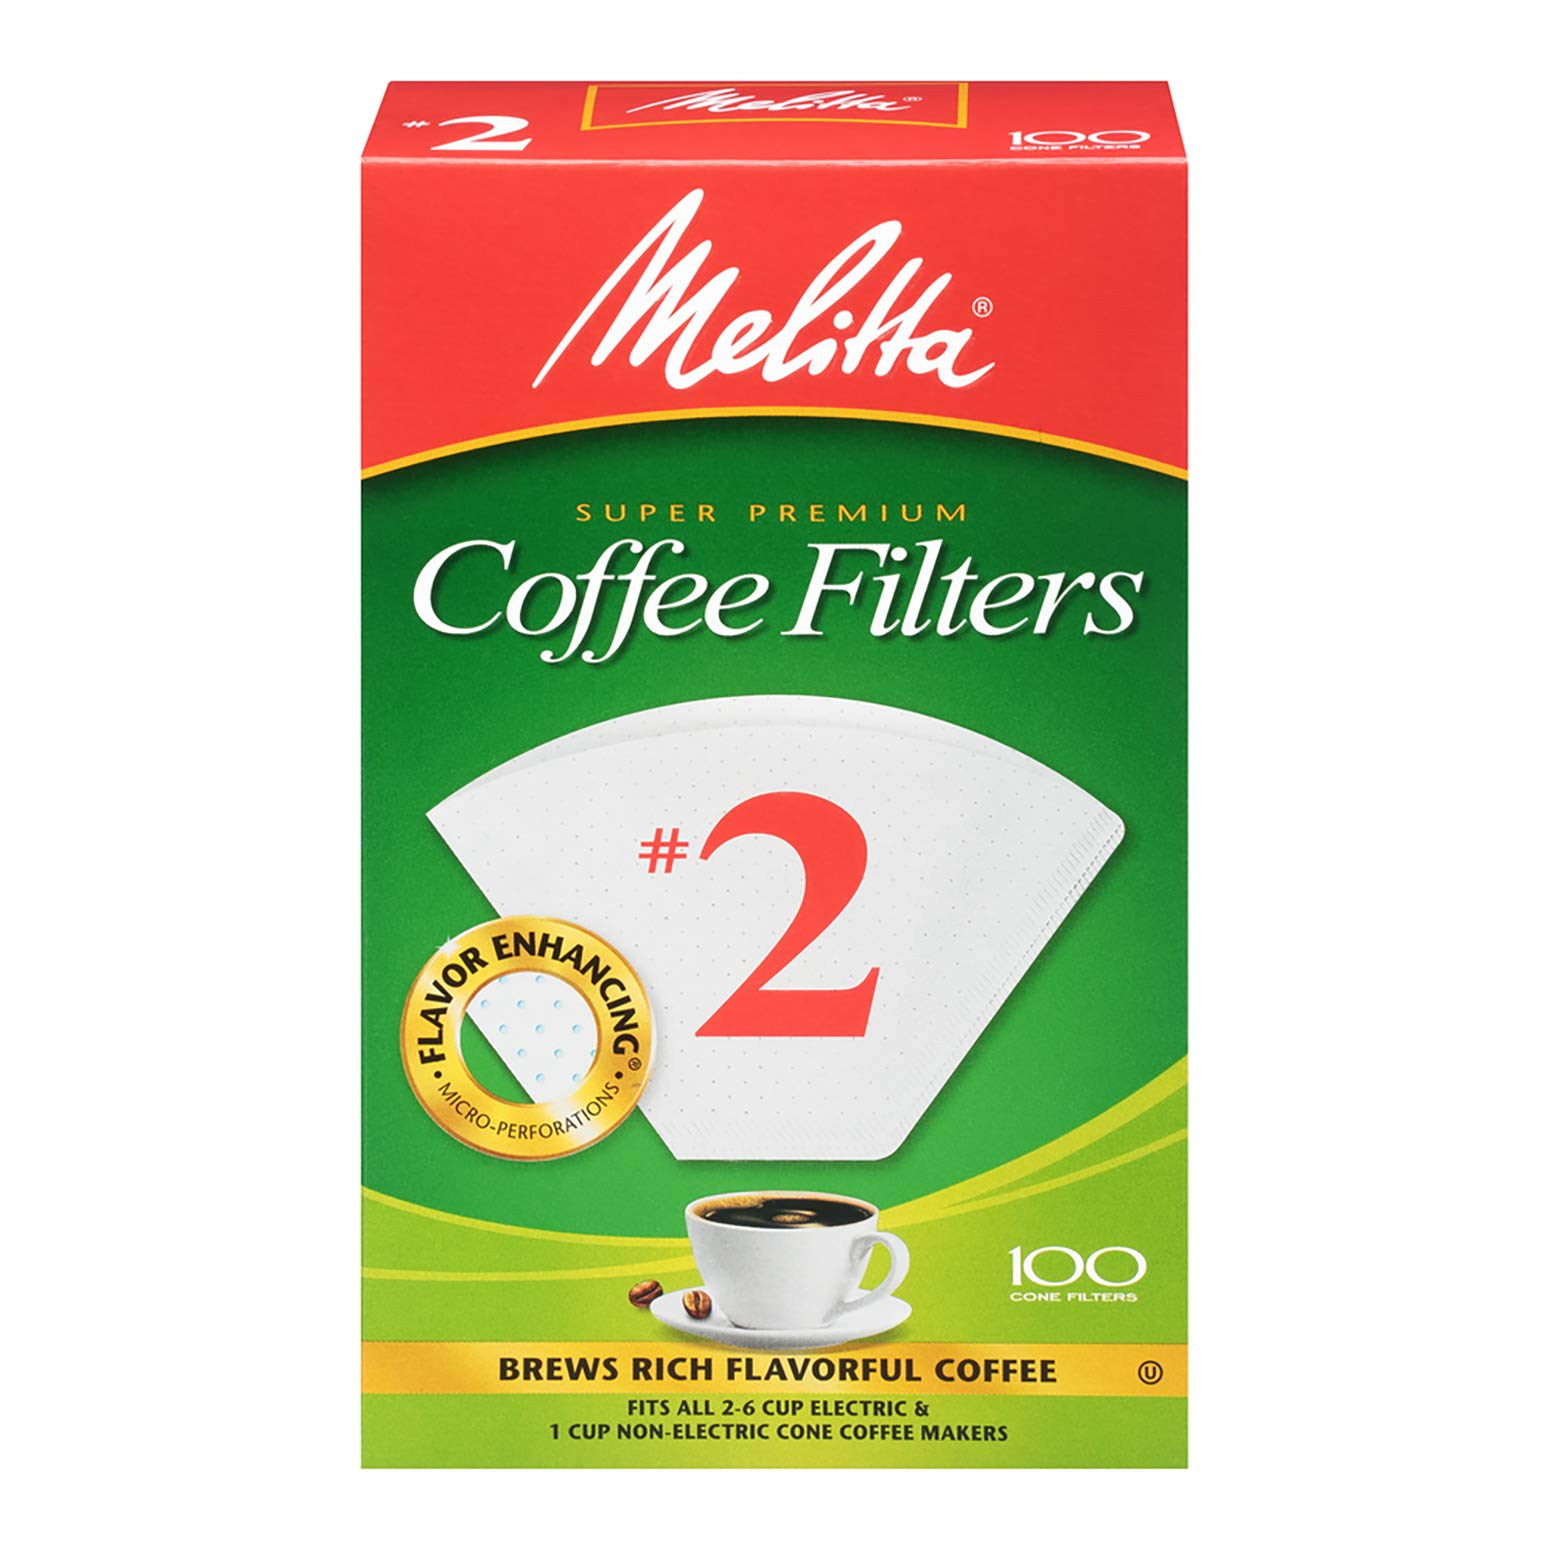 Melitta Cone Coffee Filters, White No. 2, 100 Count (Pack of 12) by Melitta